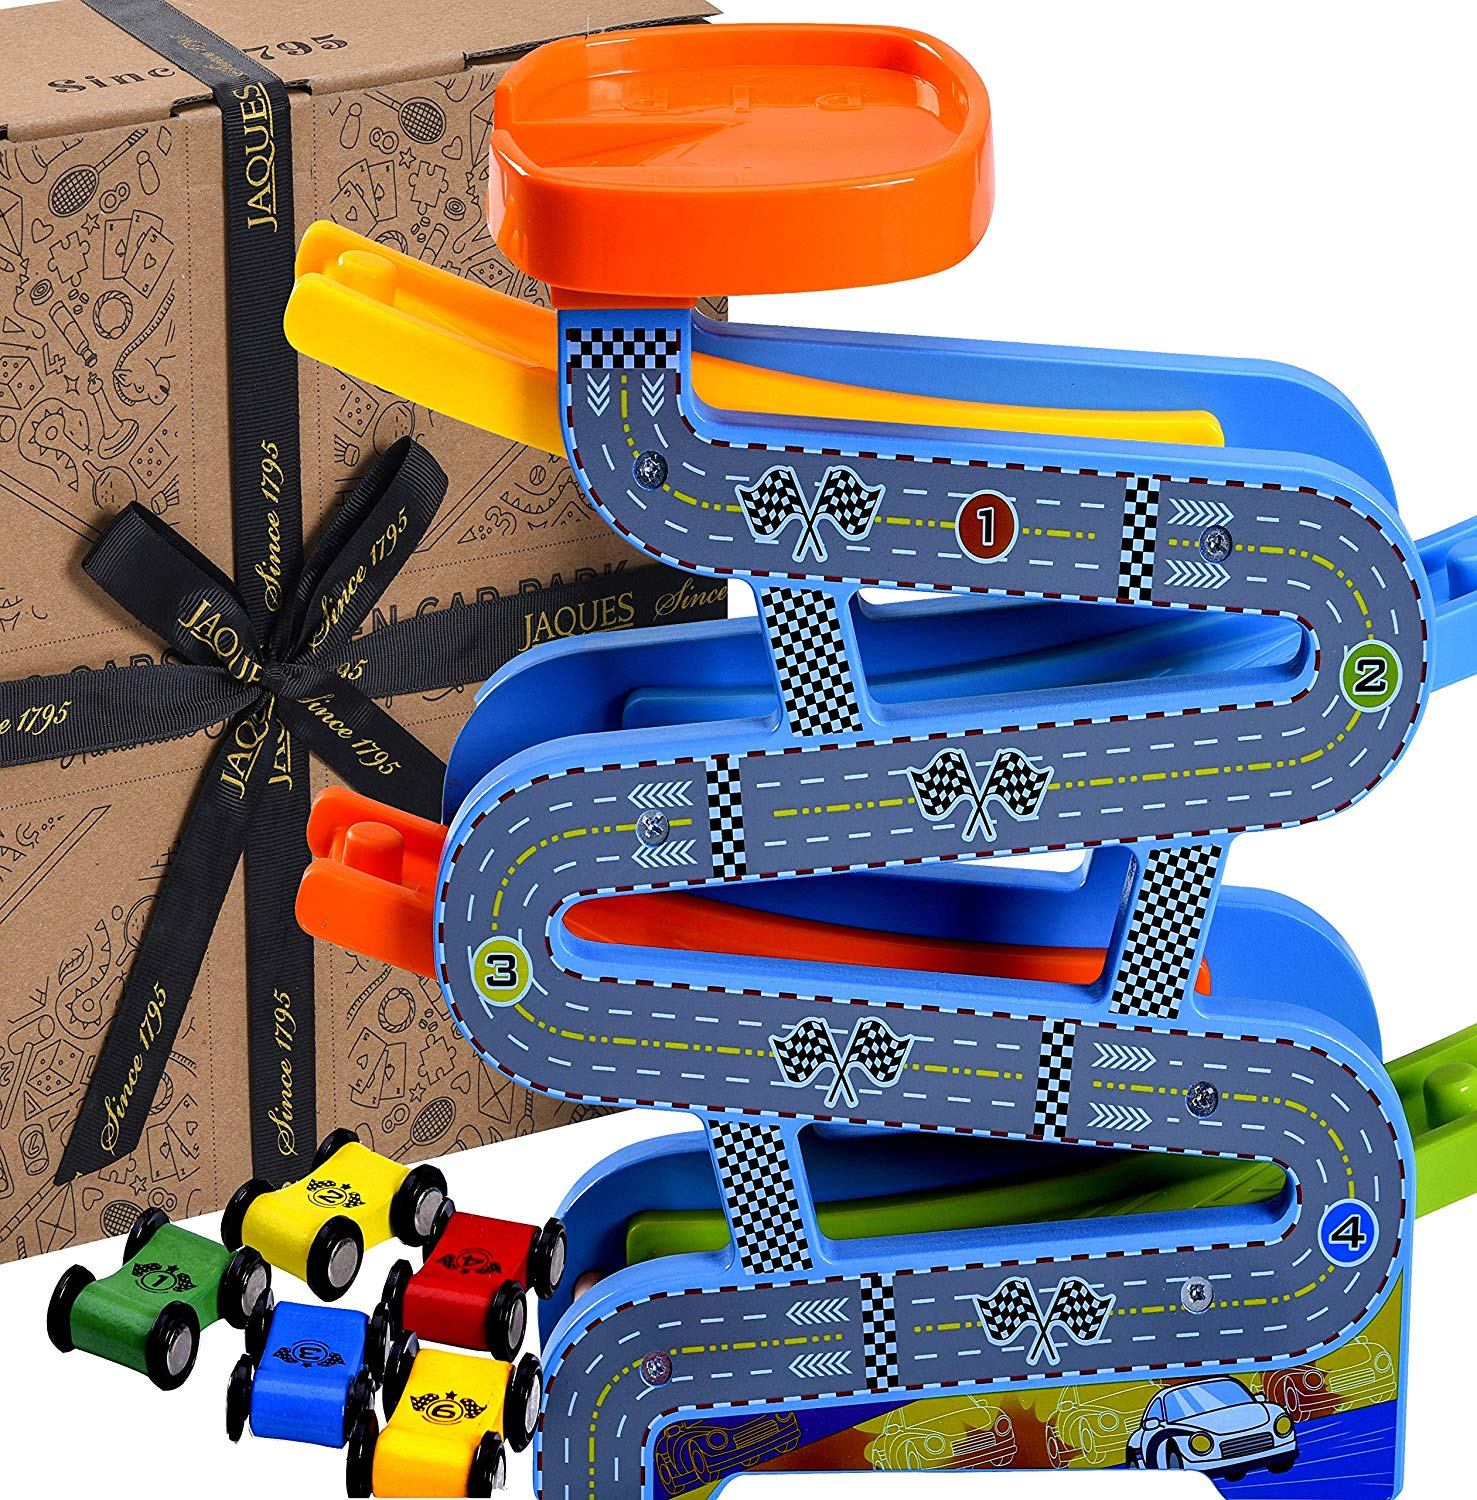 Jaques of London Wooden Toys Carpark Perfect toddler toys